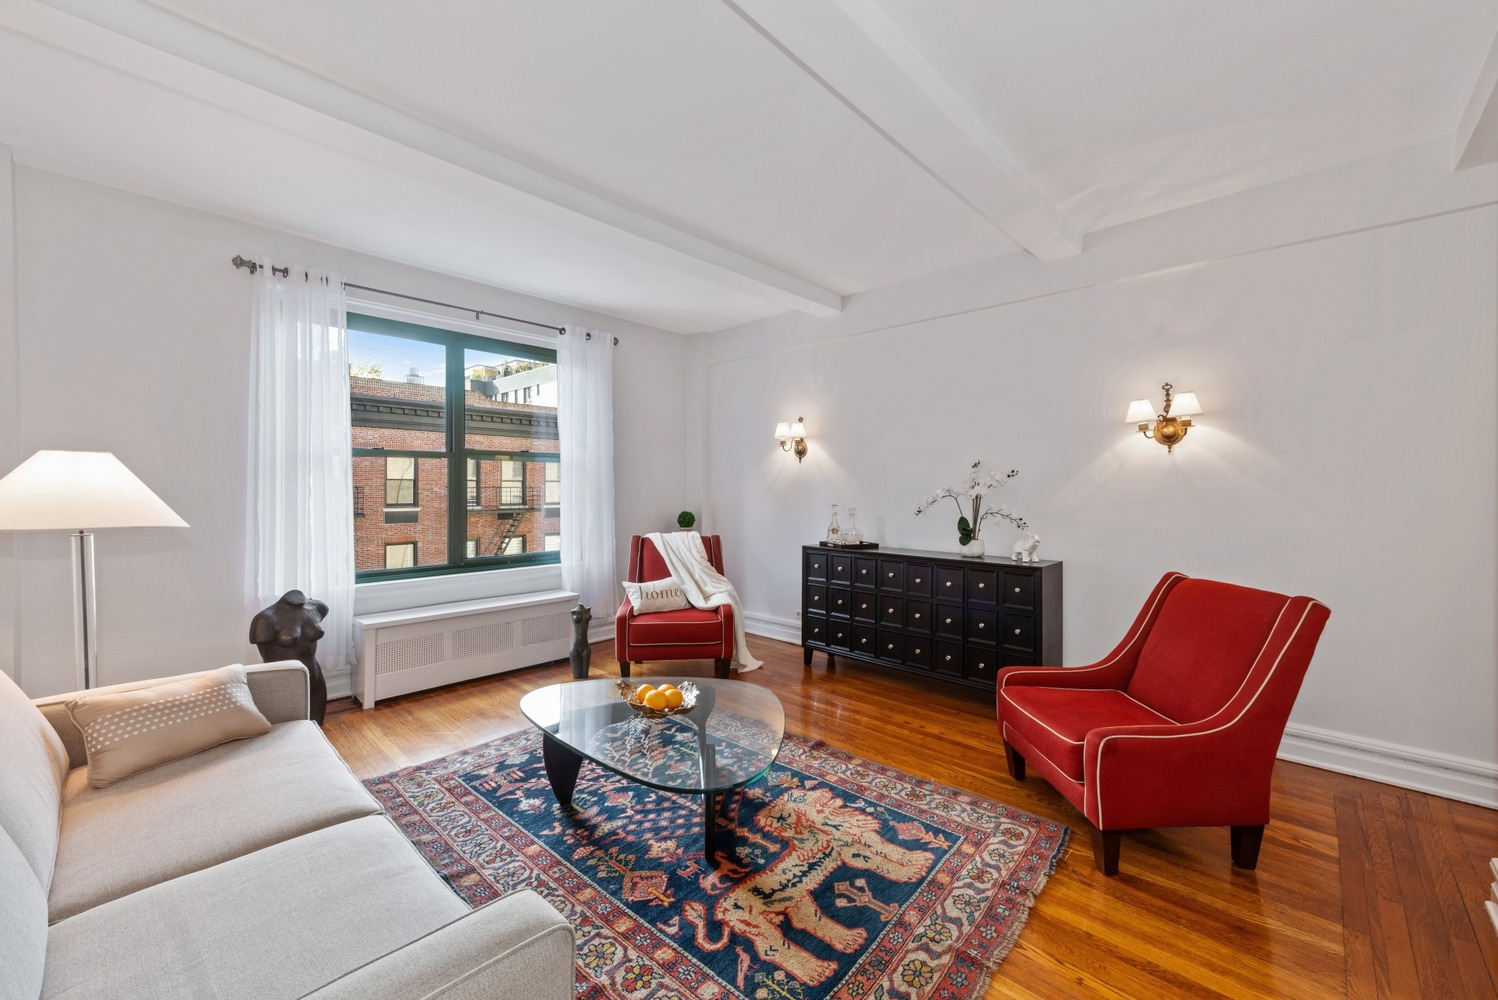 131 East 93rd Street, Unit 6A Manhattan, NY 10128